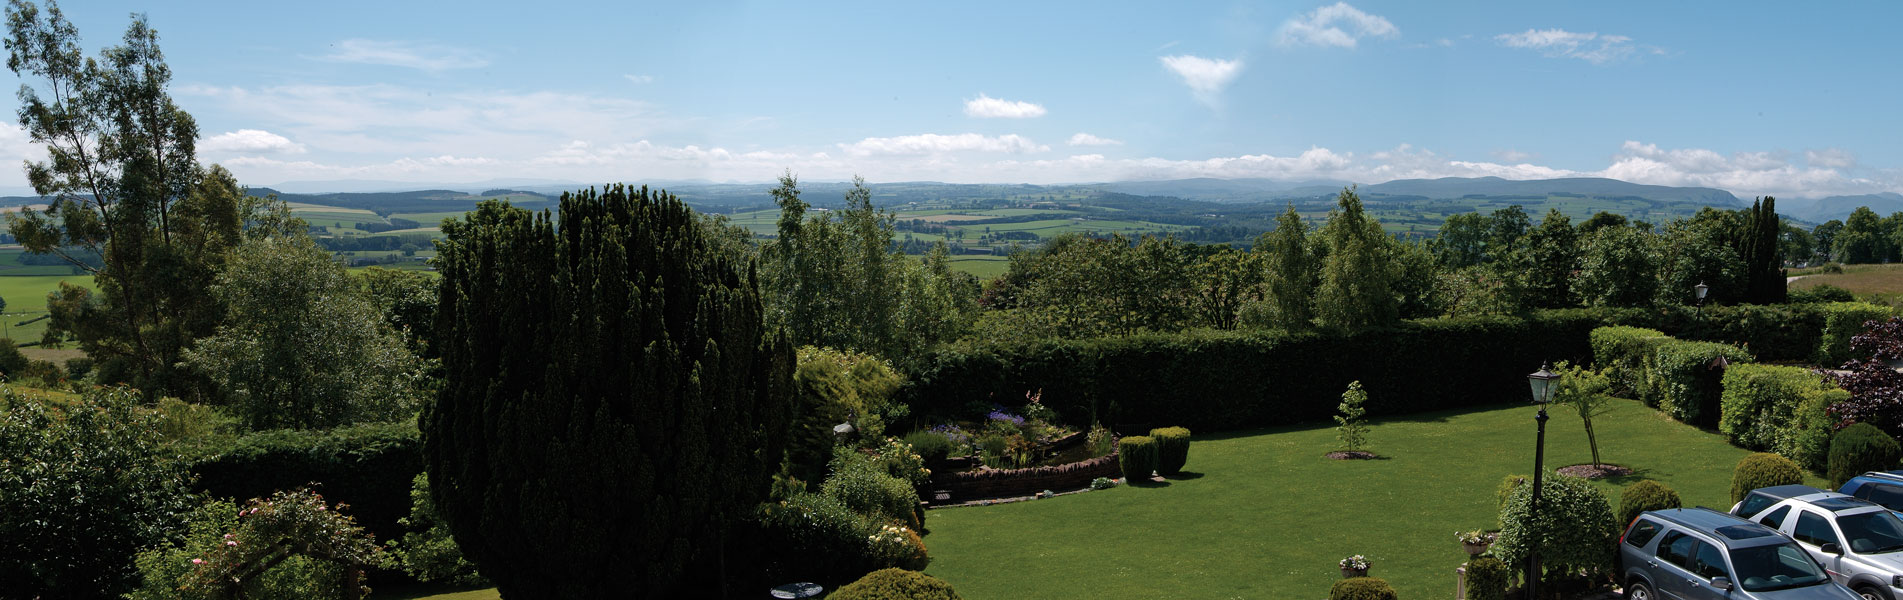 roundthorn view